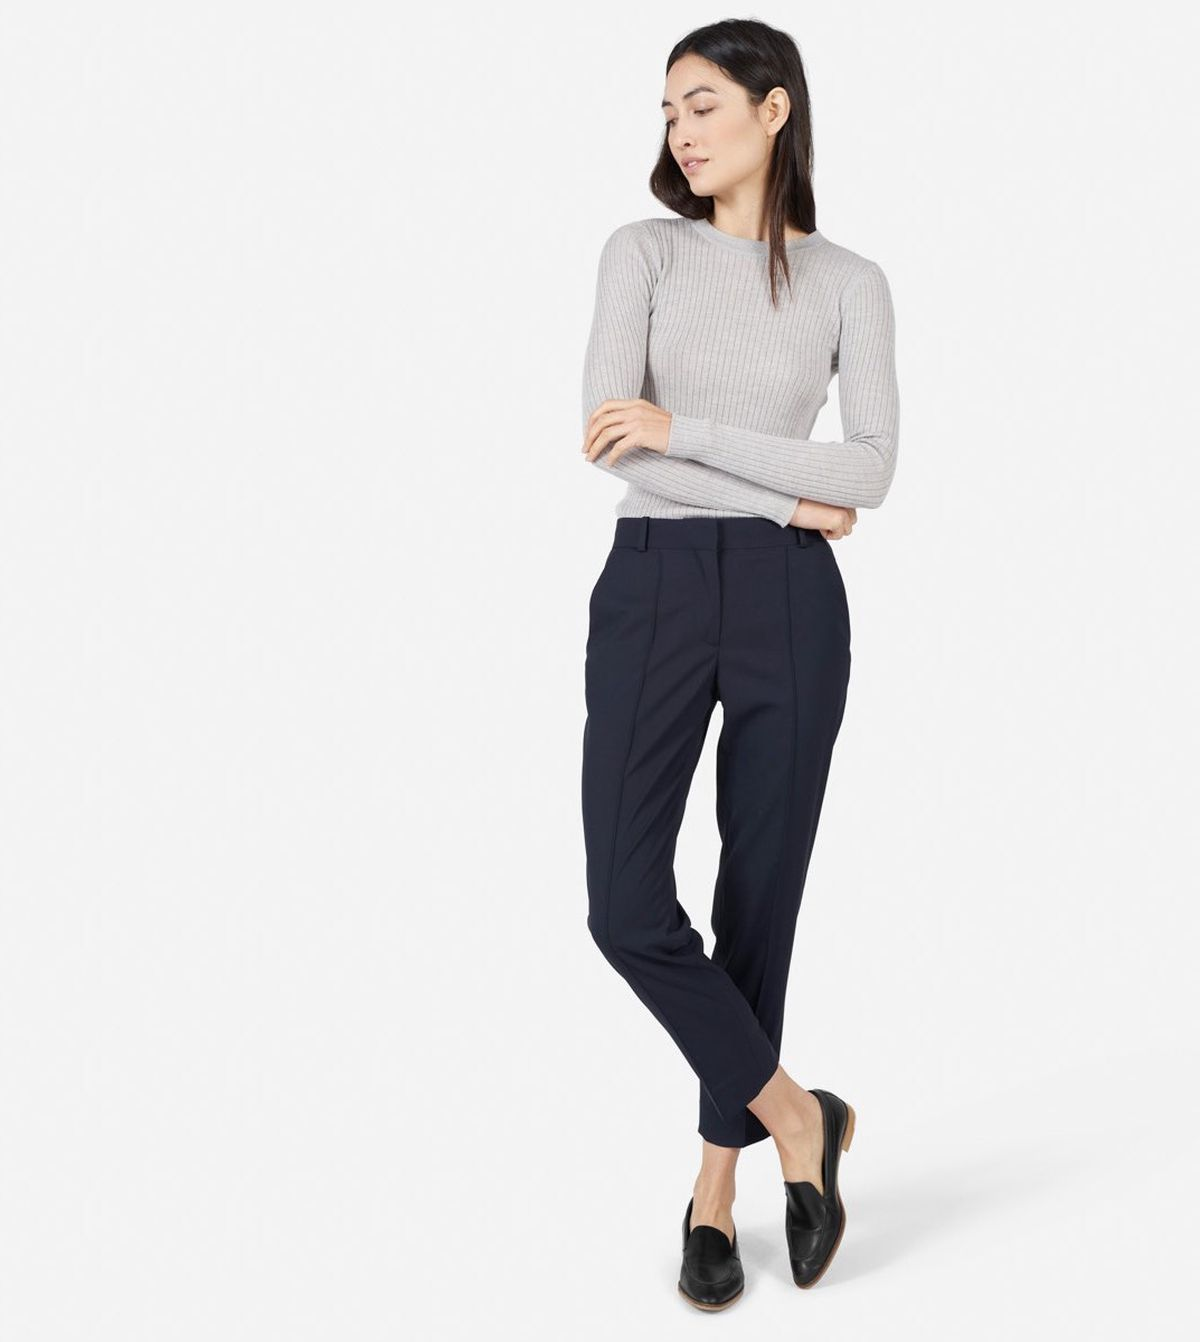 Business Attire Using Flat Shoes